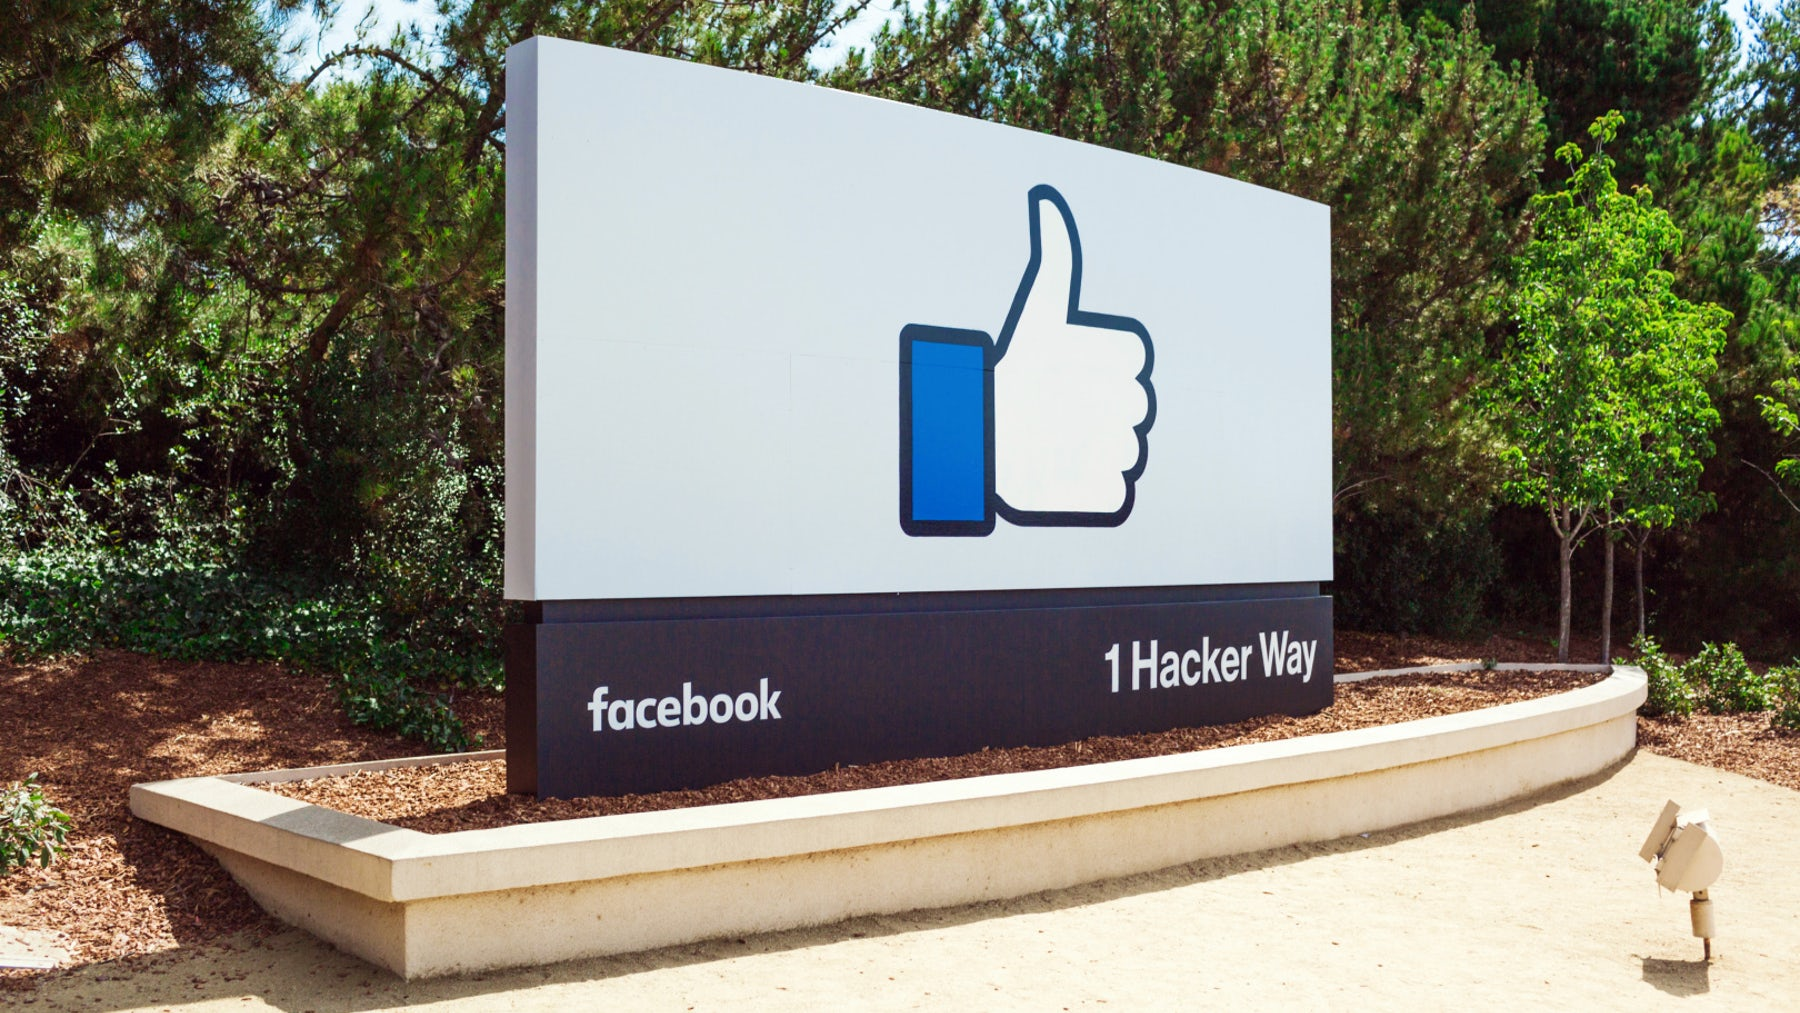 Facebook headquarters | Source: Courtesy